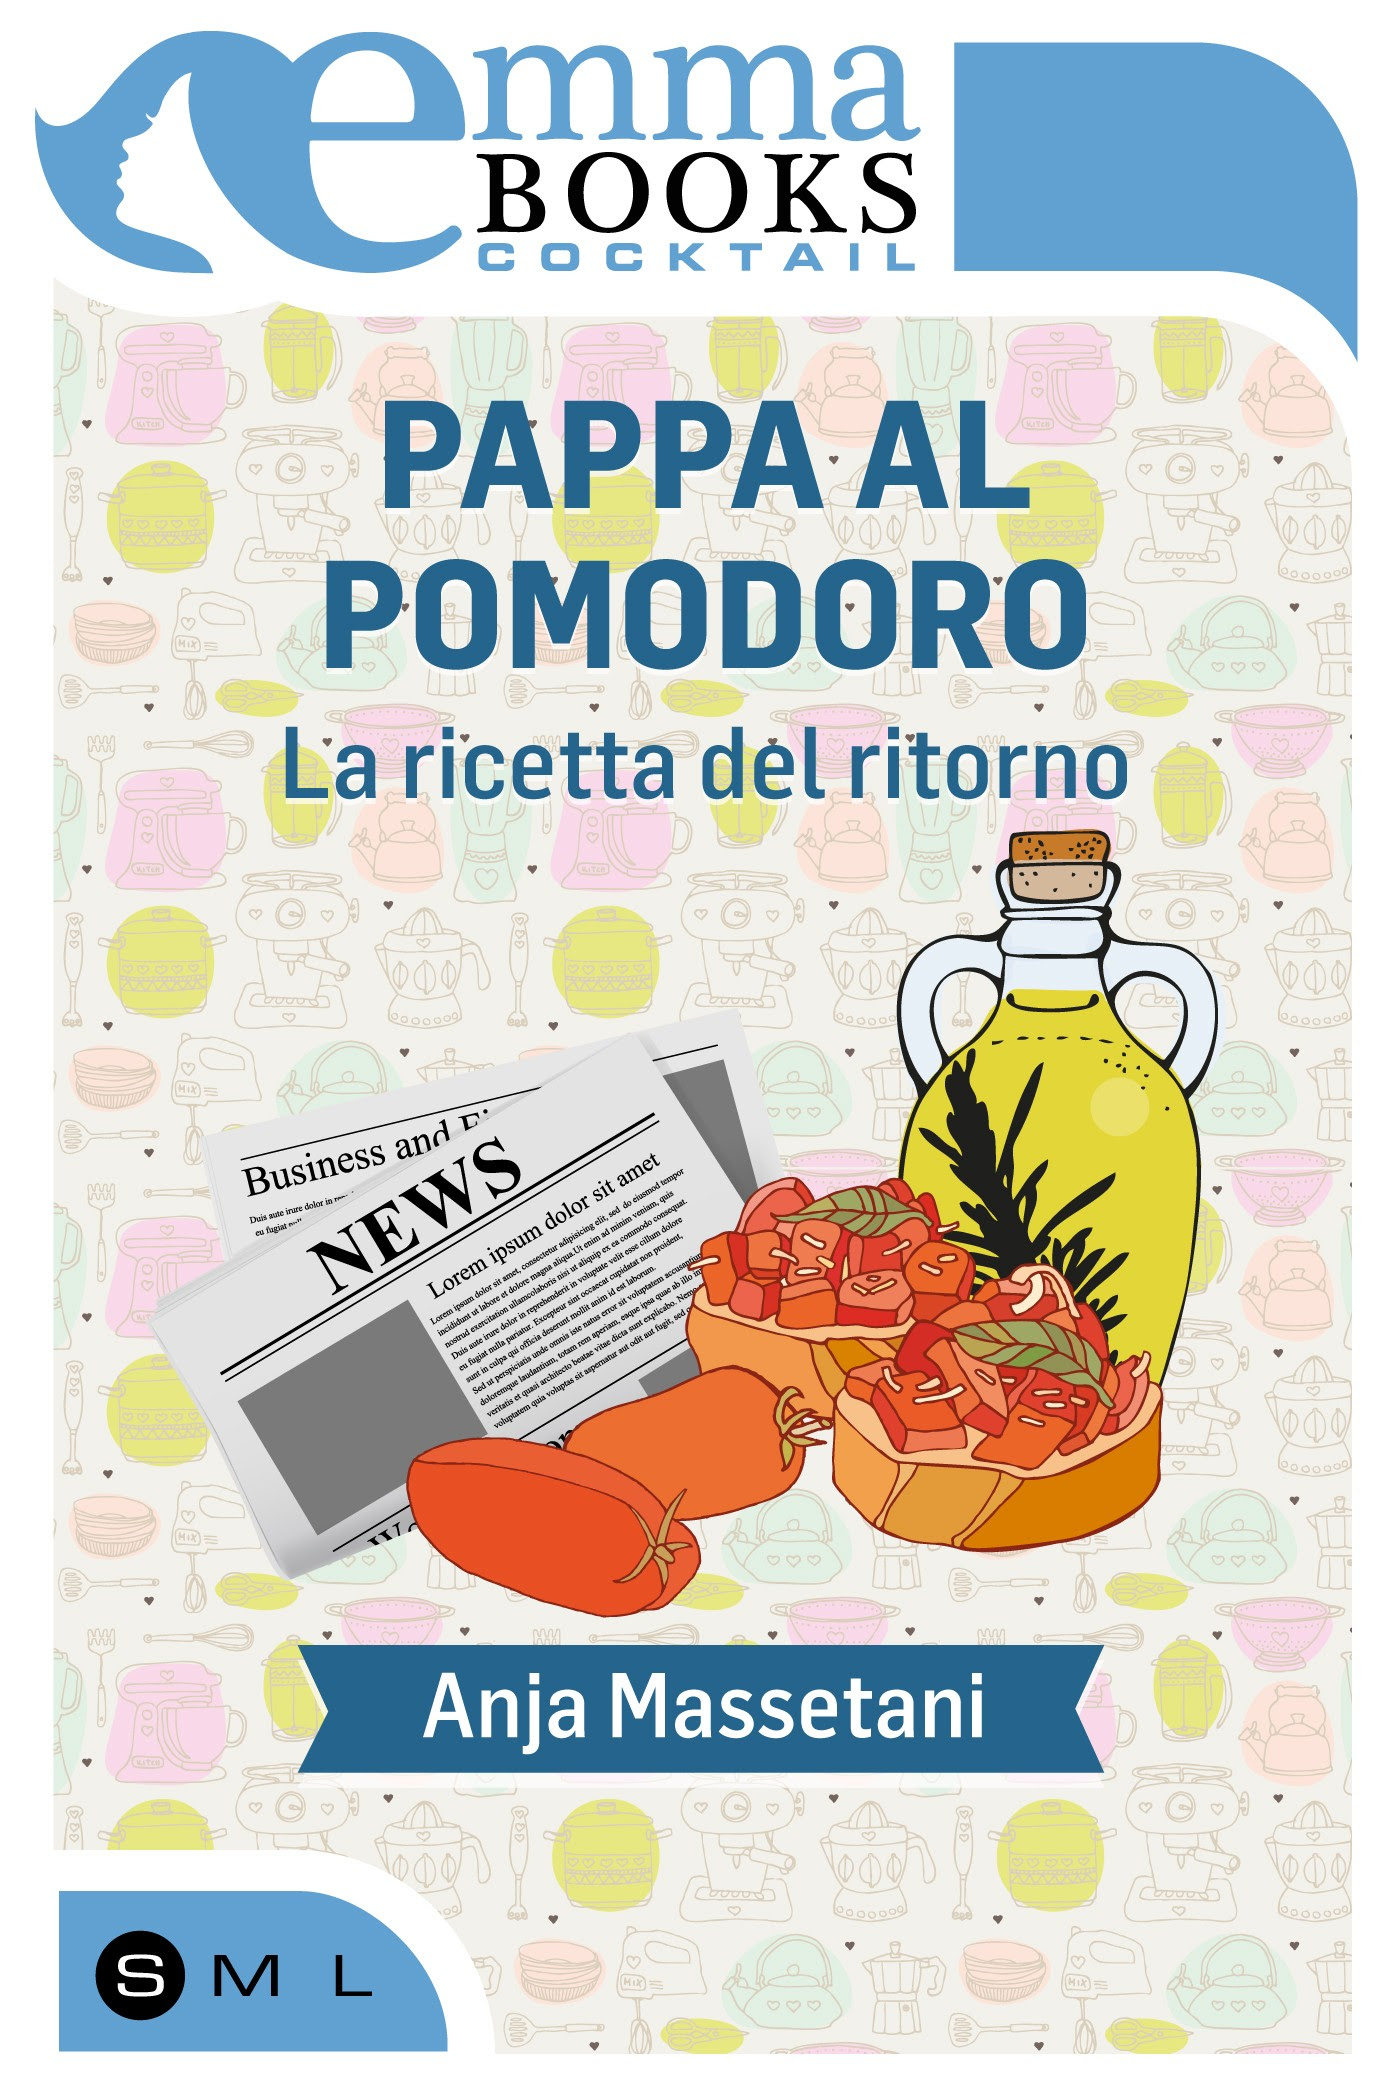 http://alessandria.bookrepublic.it/api/books/9788868930455/cover